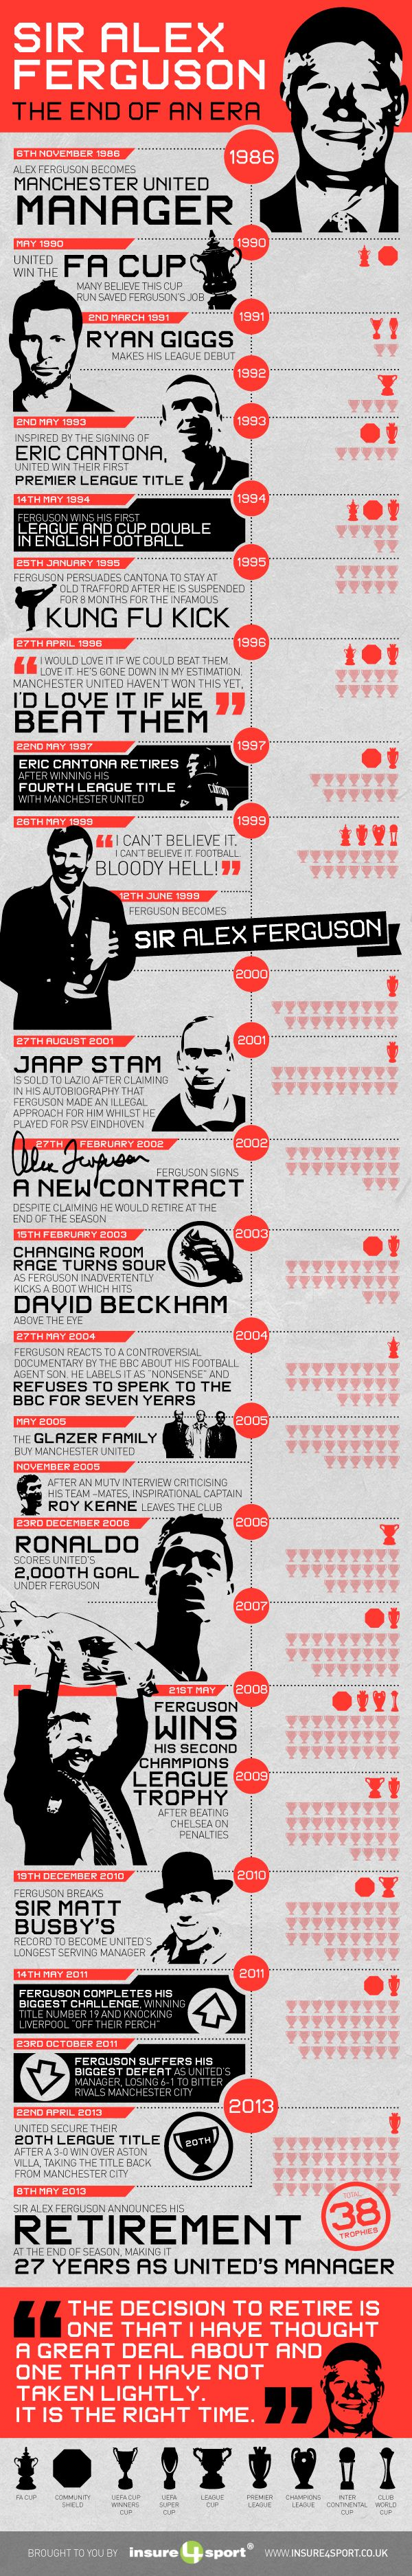 infographic tribute to Sir Alex Ferguson's amazing success at Manchester United -  charts the trophies and events through an amazing 27 year jour